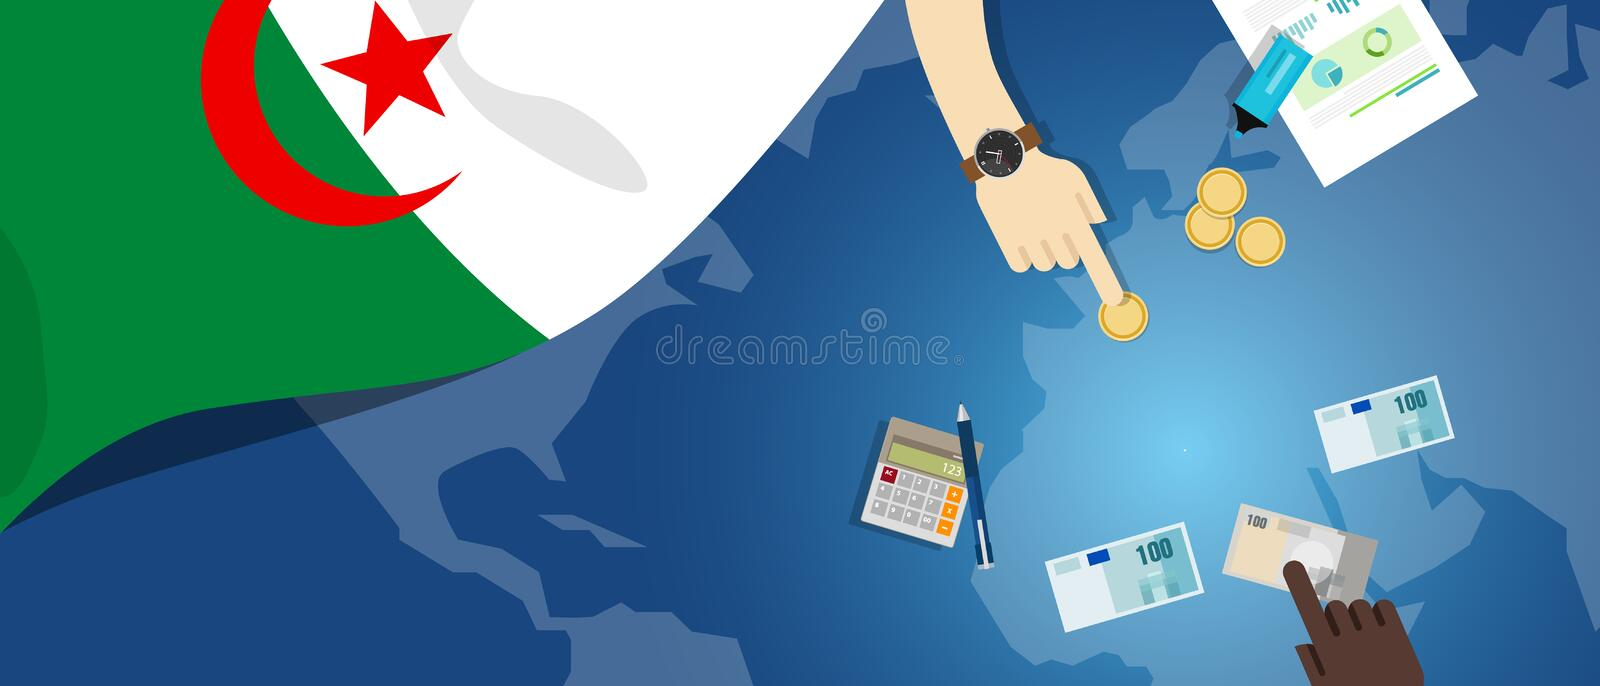 Algeria economy fiscal money trade concept illustration of financial banking budget with flag map and currency royalty free illustration